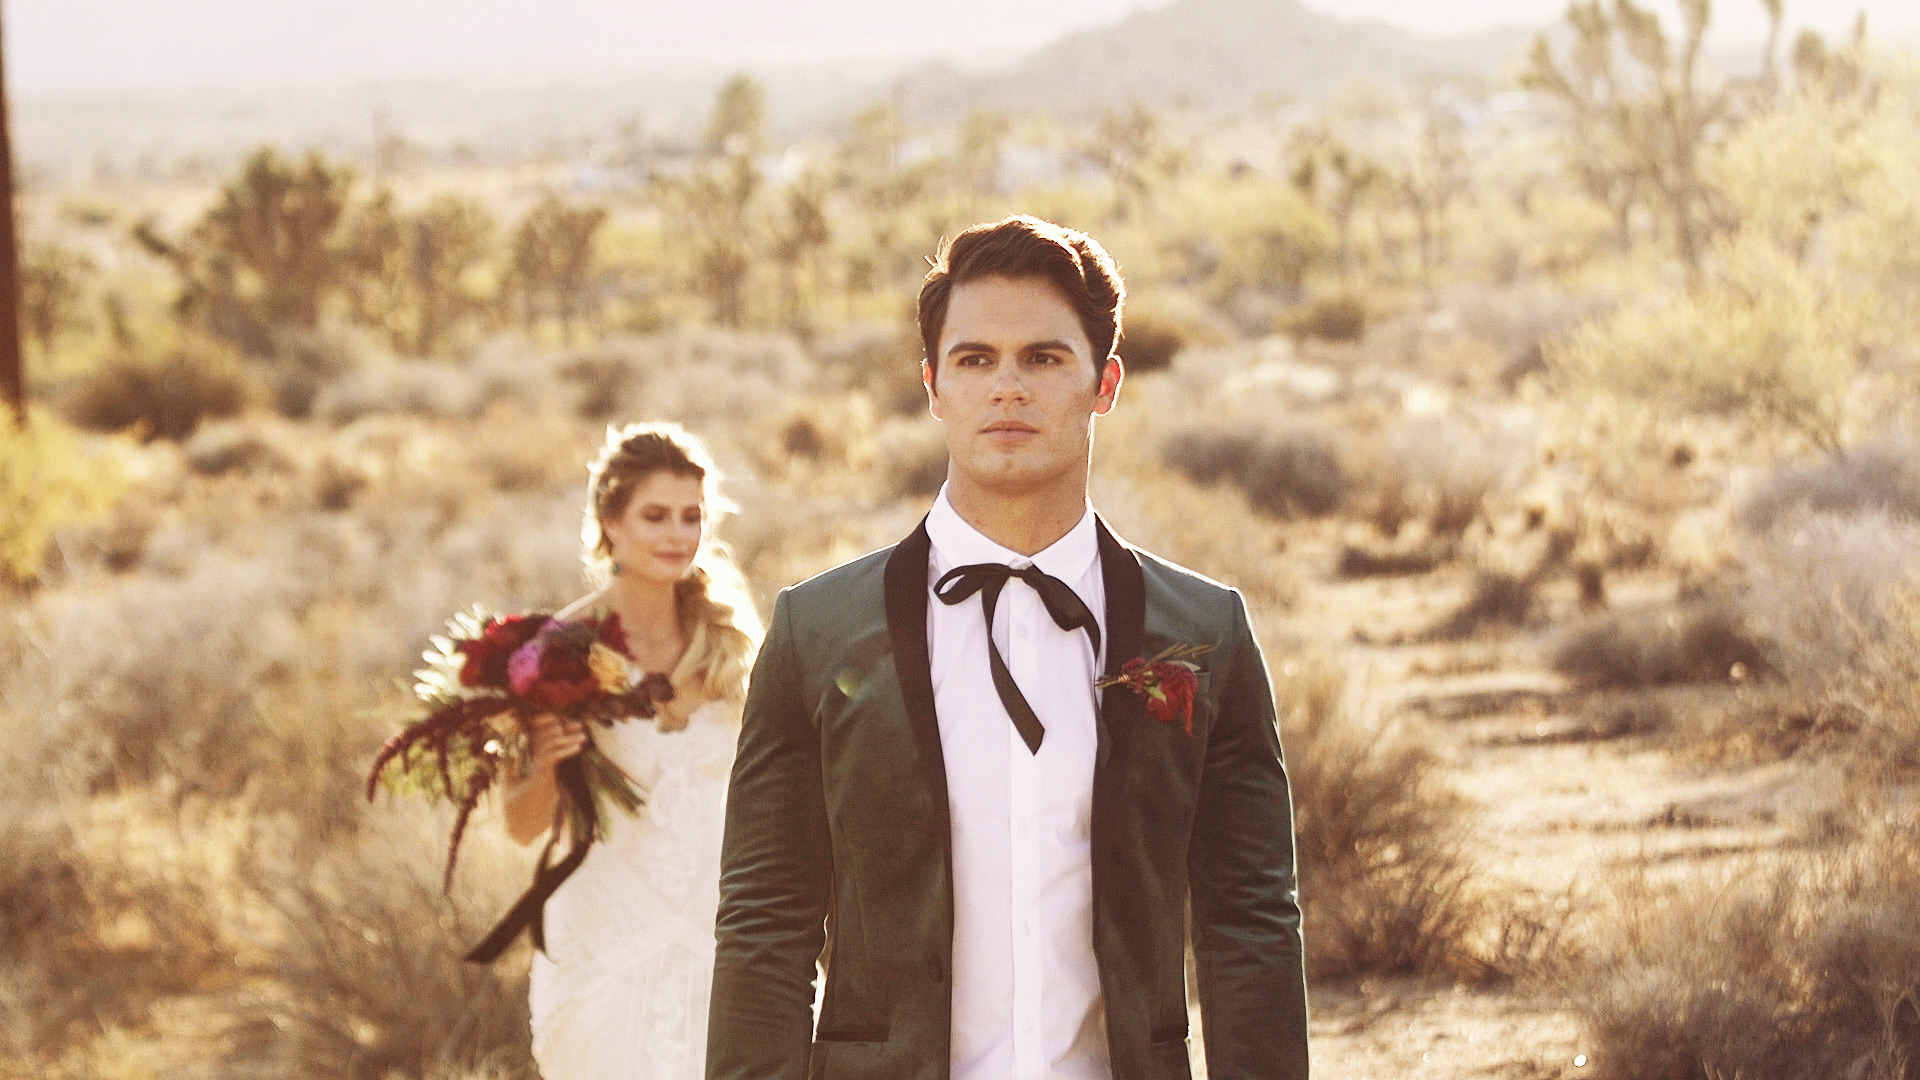 Bride and groom during first look at a Joshua Tree Wedding Styled Shoot